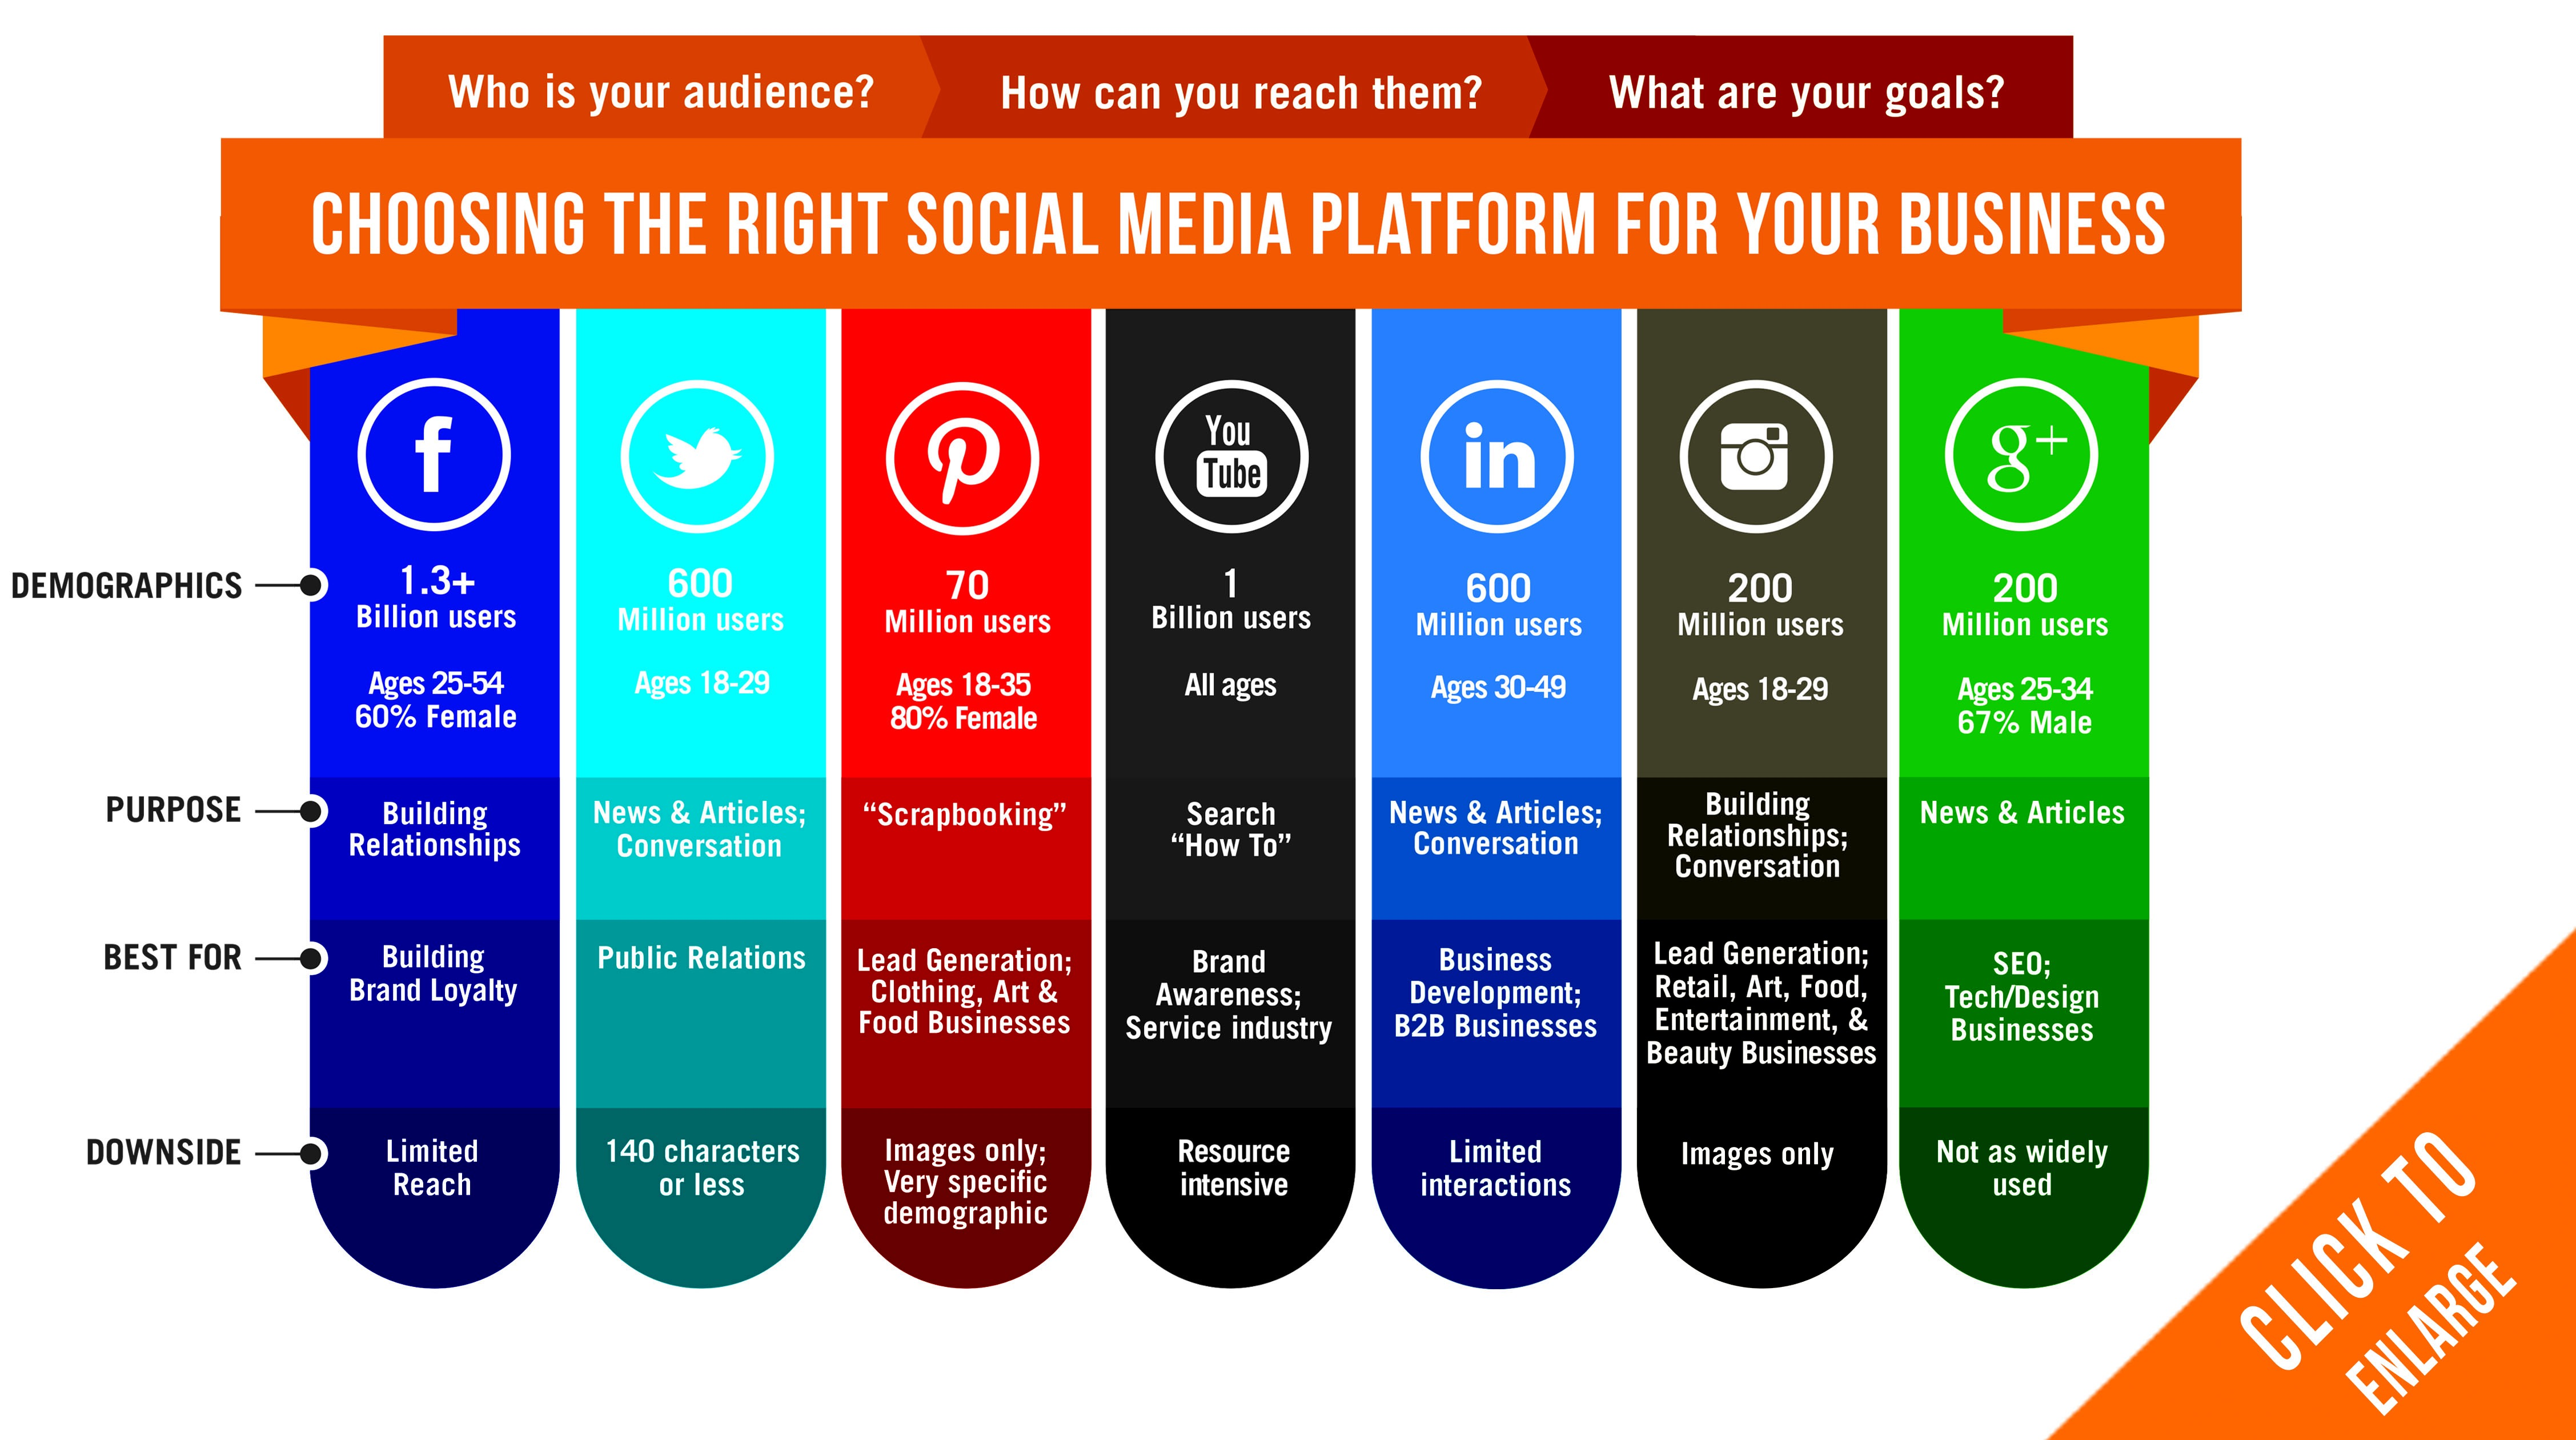 SOCIAL MEDIIA PLATFORM FOR BUSINESS